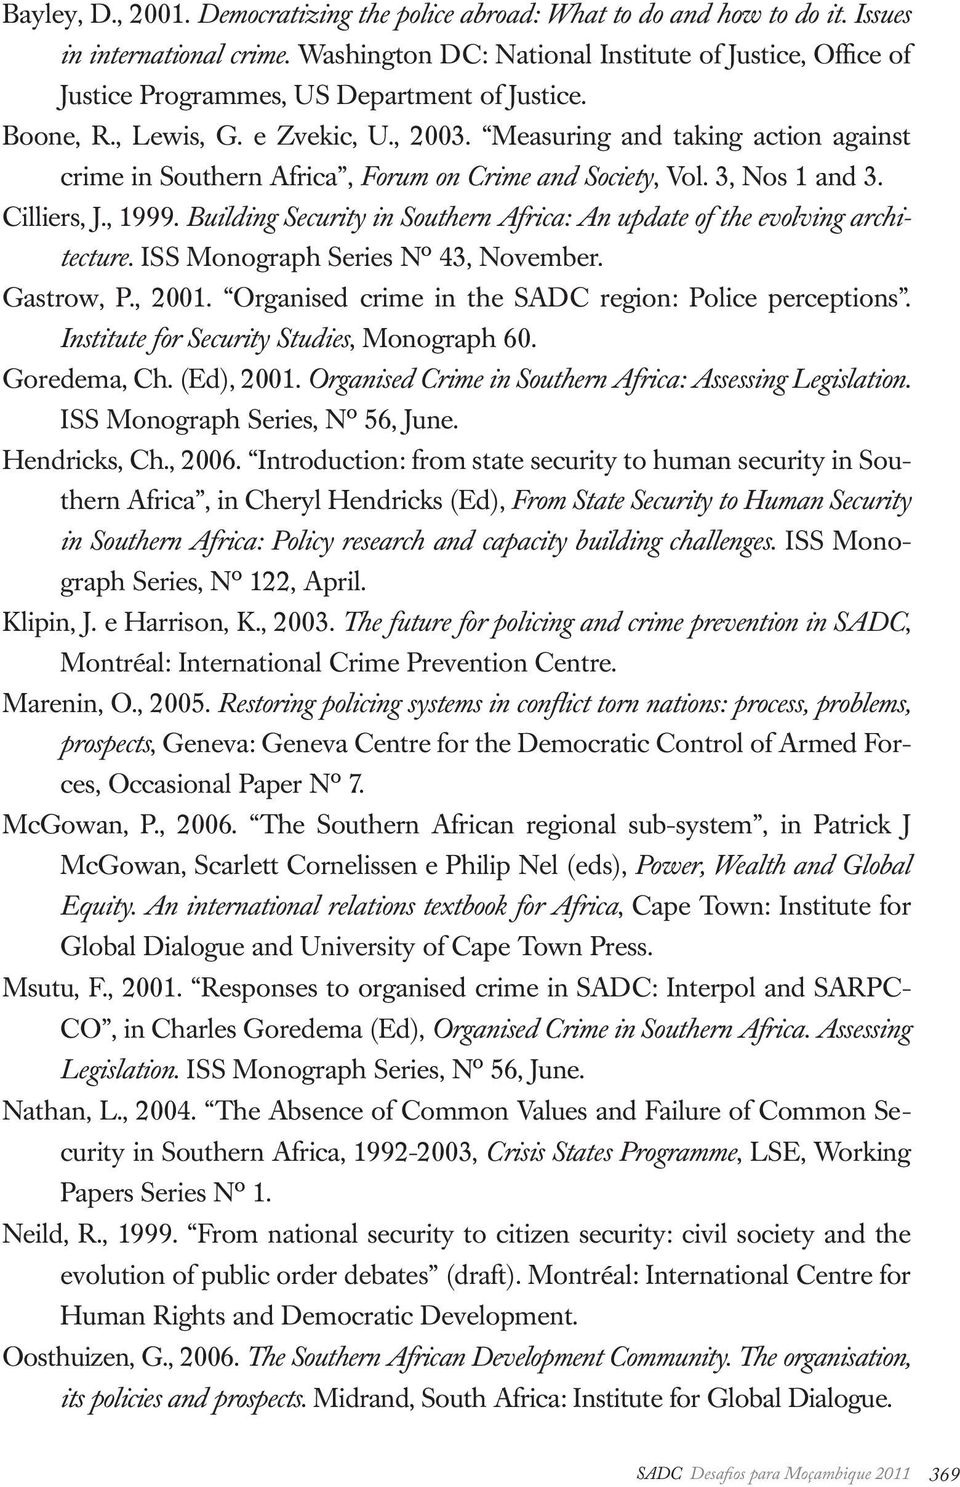 Measuring and taking action against crime in Southern Africa, Forum on Crime and Society, Vol. 3, Nos 1 and 3. Cilliers, J., 1999.